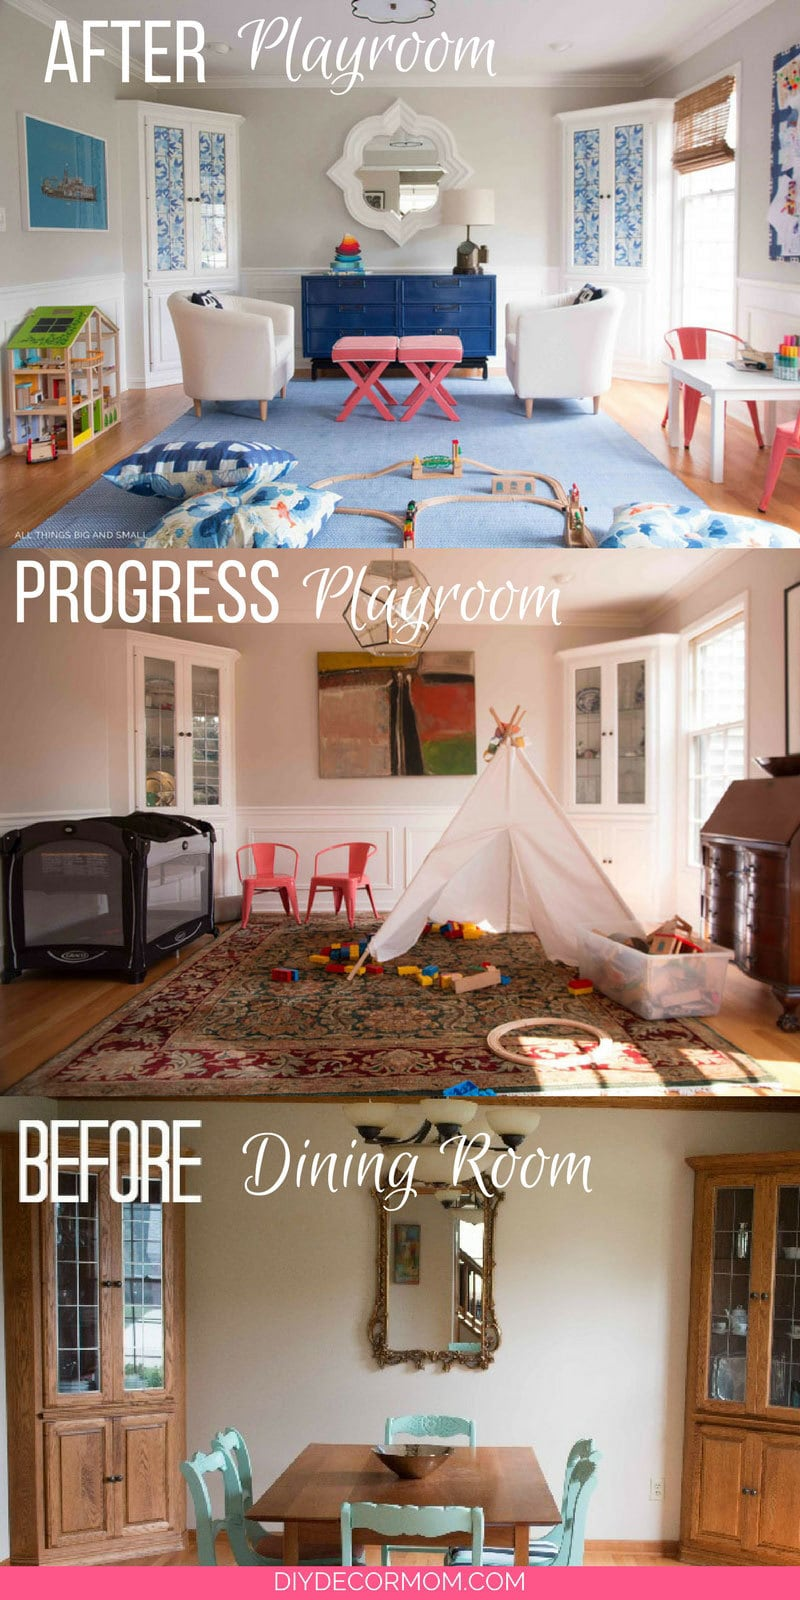 Playroom Mattress On Floor